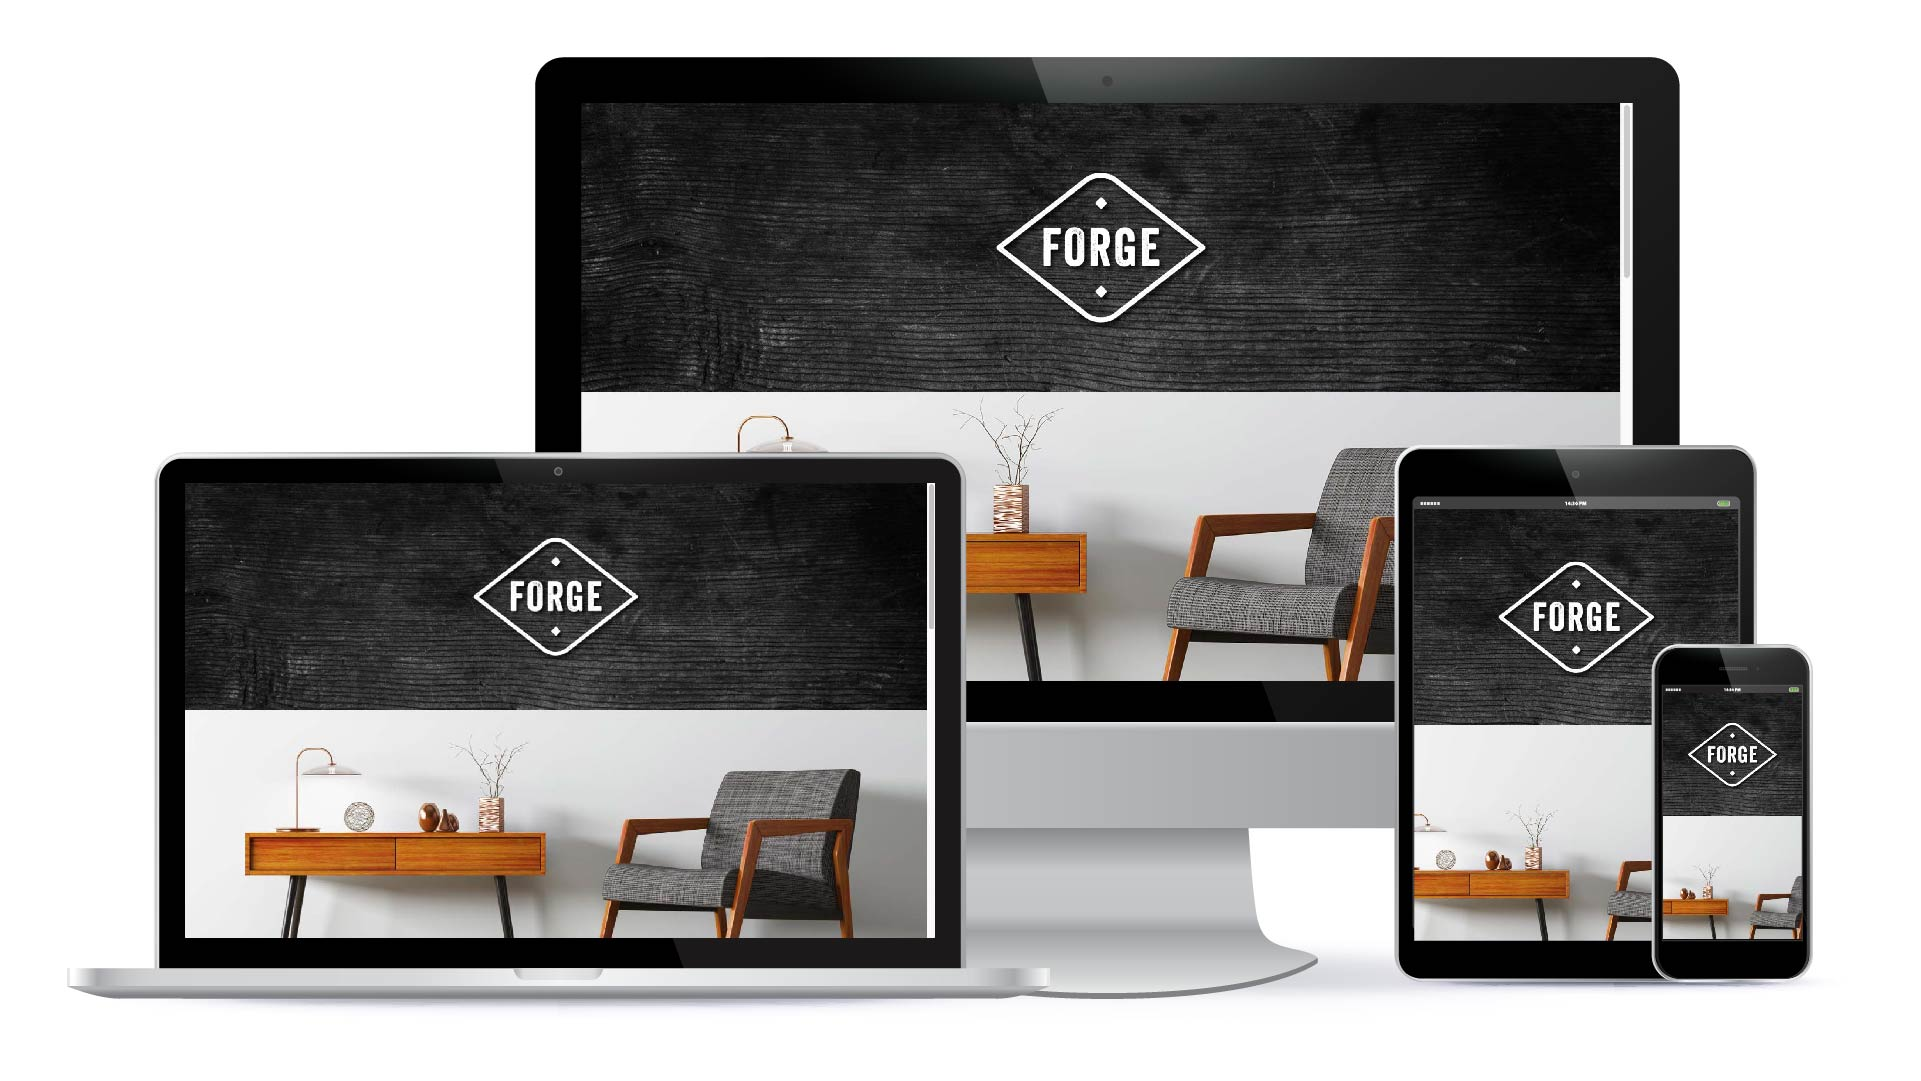 forge-web-all